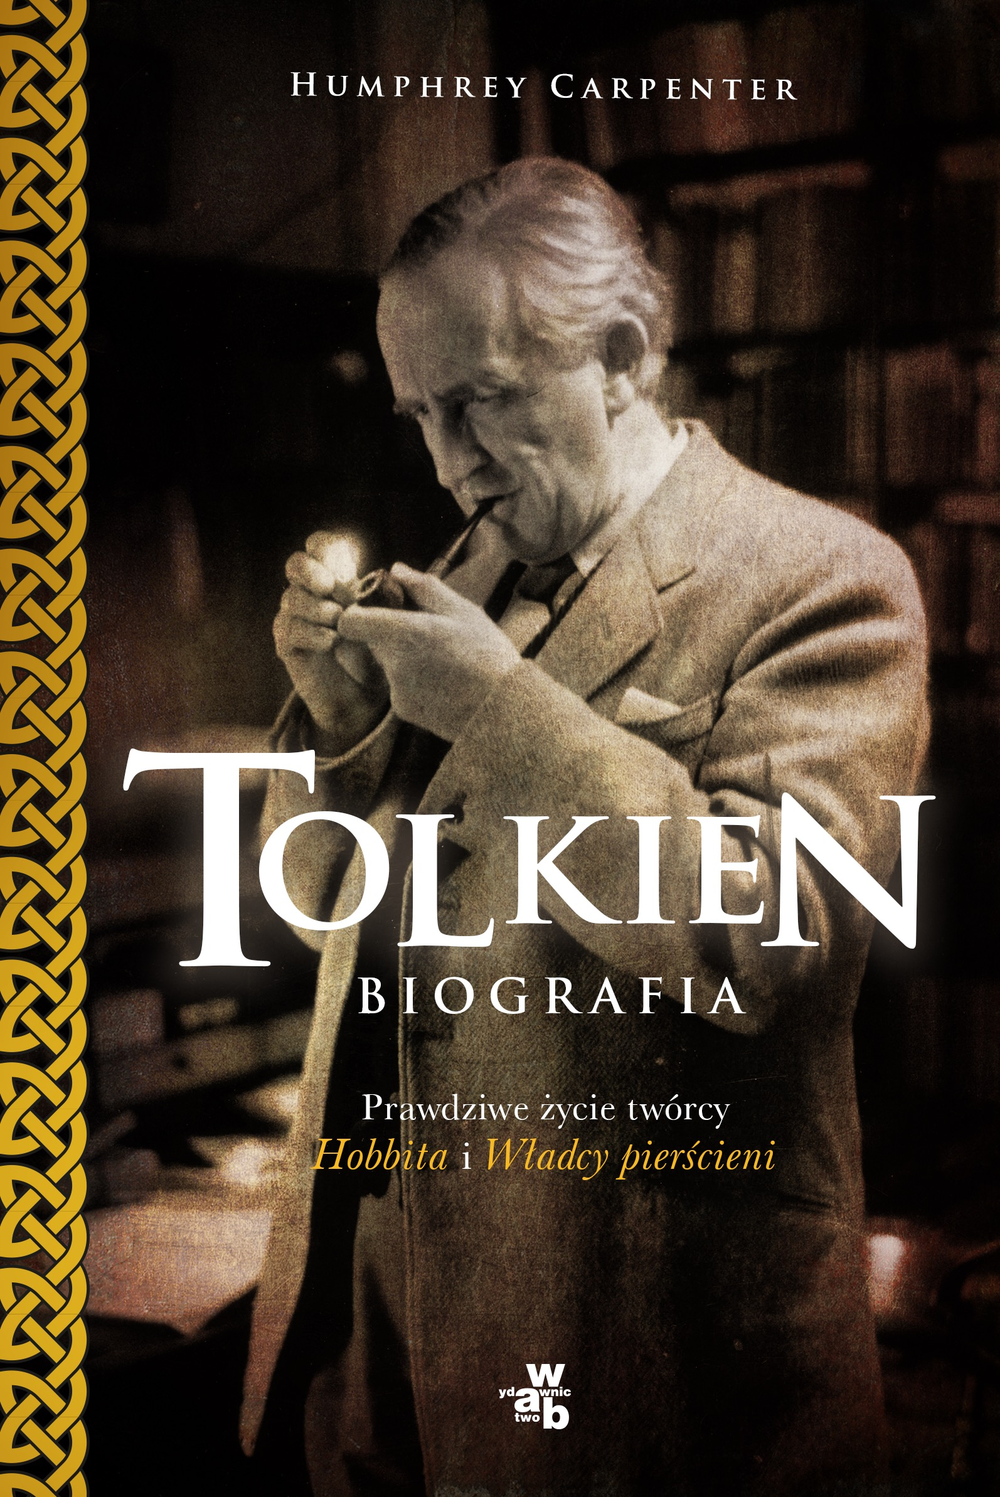 TOLKIEN BIOGRAFIA - HUMPHREY CARPENTER